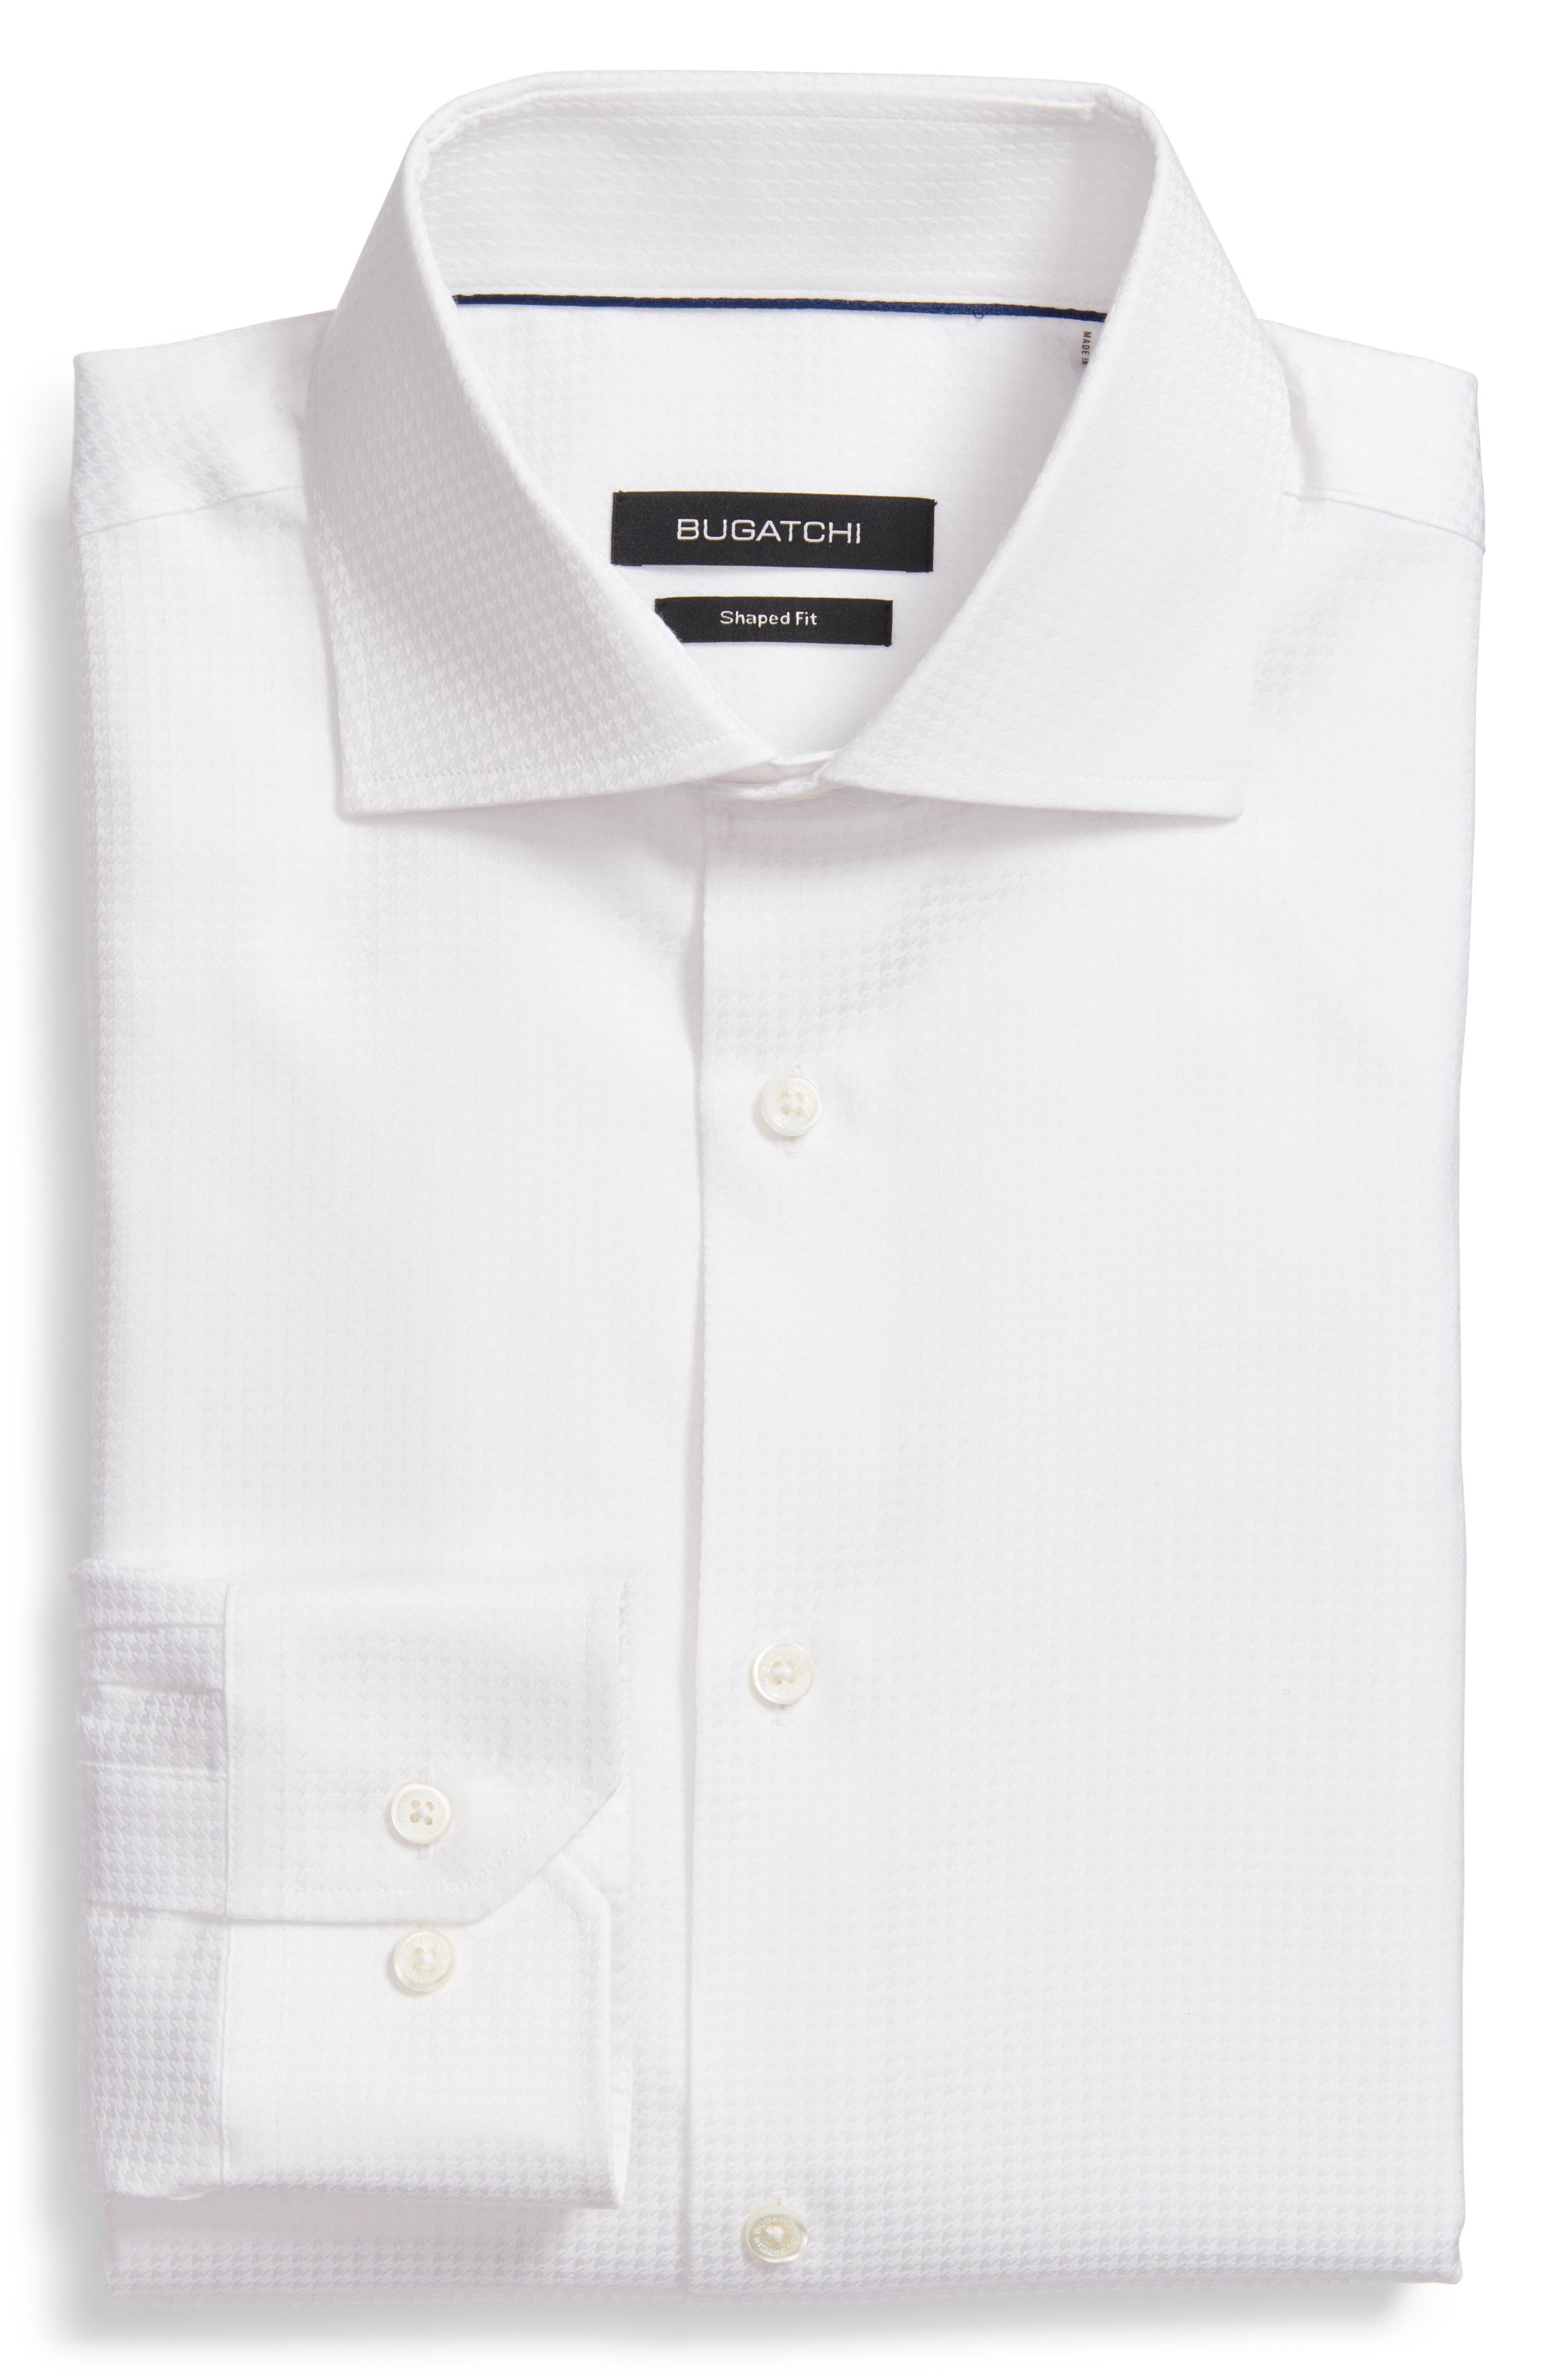 Trim Fit Houndstooth Dress Shirt,                             Main thumbnail 1, color,                             White